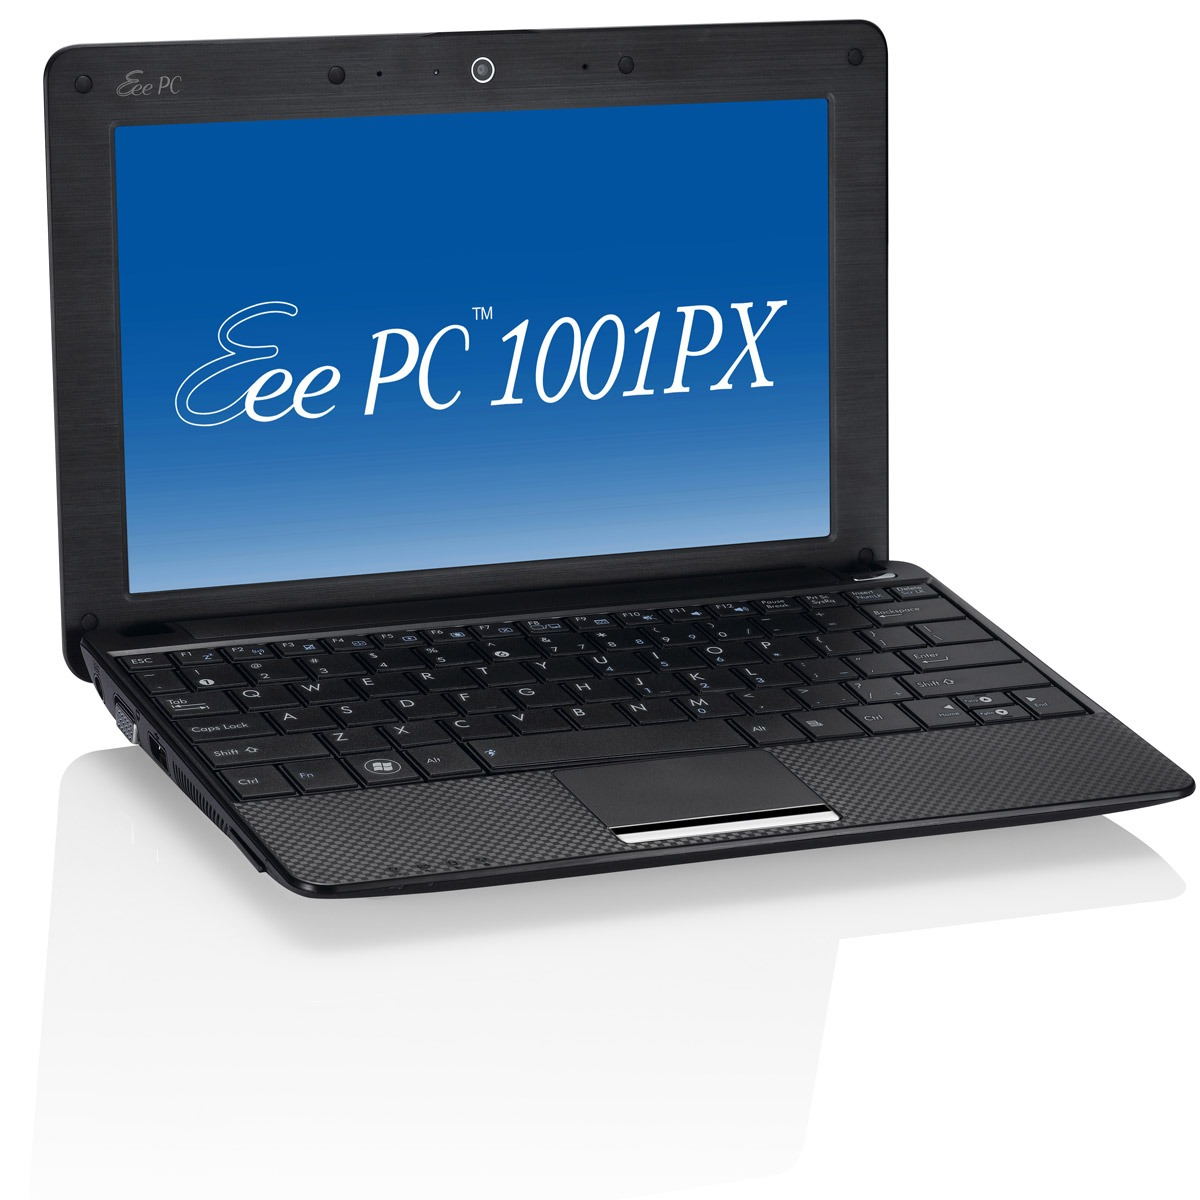 "LDLC.com ASUS Eee PC 1001PX ASUS Eee PC 1001PX Noir - Intel Atom N450 1 Go 160 Go 10.1"" LED Wi-Fi G Webcam XP Home"